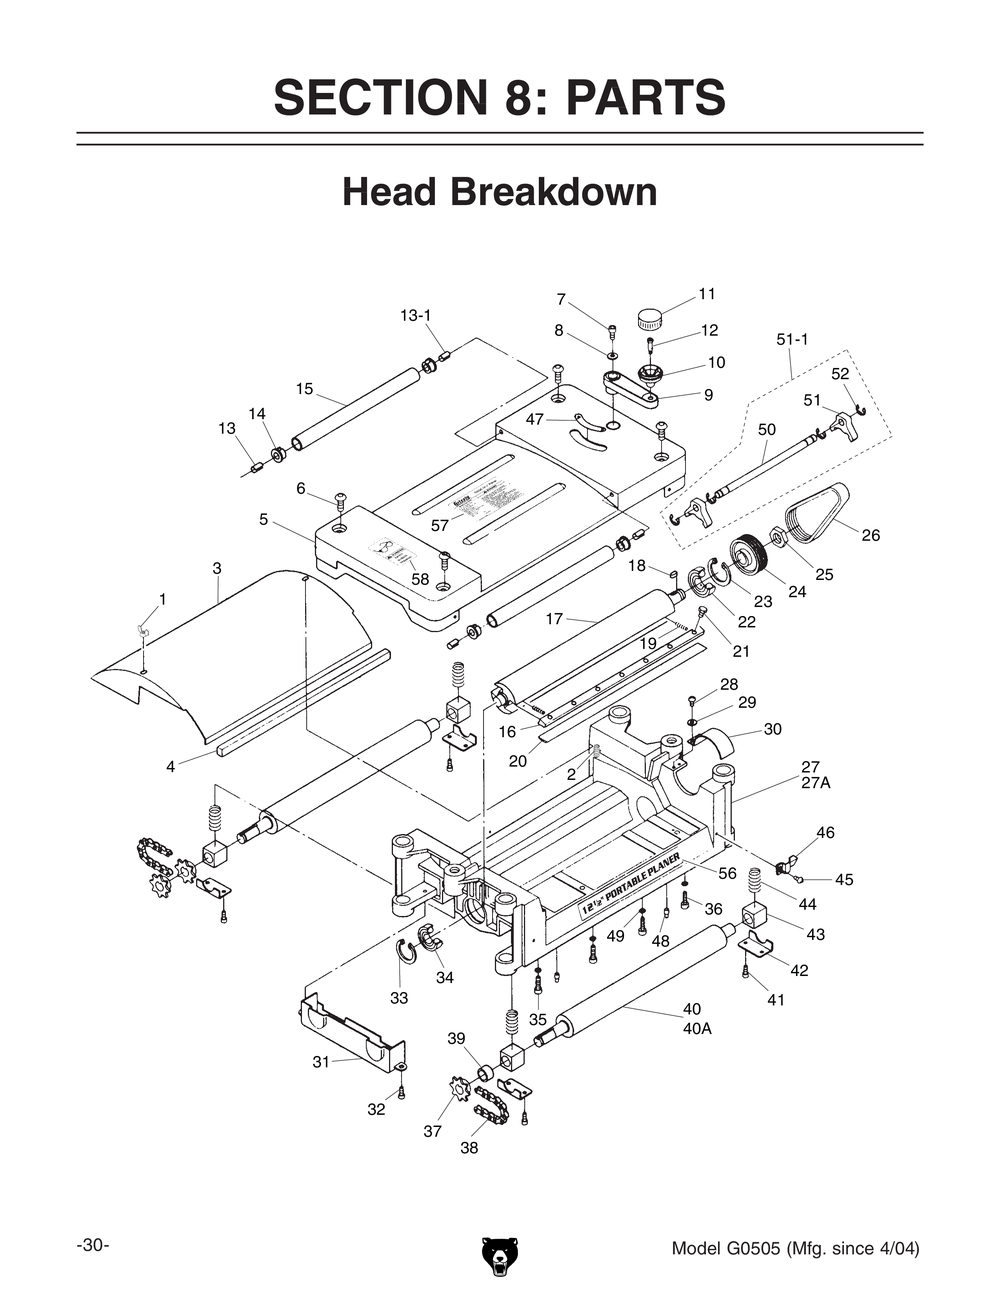 1994 ford f150 wiring diagram headlights pdf with Jet 16 Wiring Diagram on Yamaha 700 Waverunner Wiring Diagram as well Baja Motorsports Reaction 150 Wiring Diagram as well RepairGuideContent together with 1971 Ford F100 Tail Light Wiring Diagram as well Transformer Secondary Grounding Diagram For Wiring.